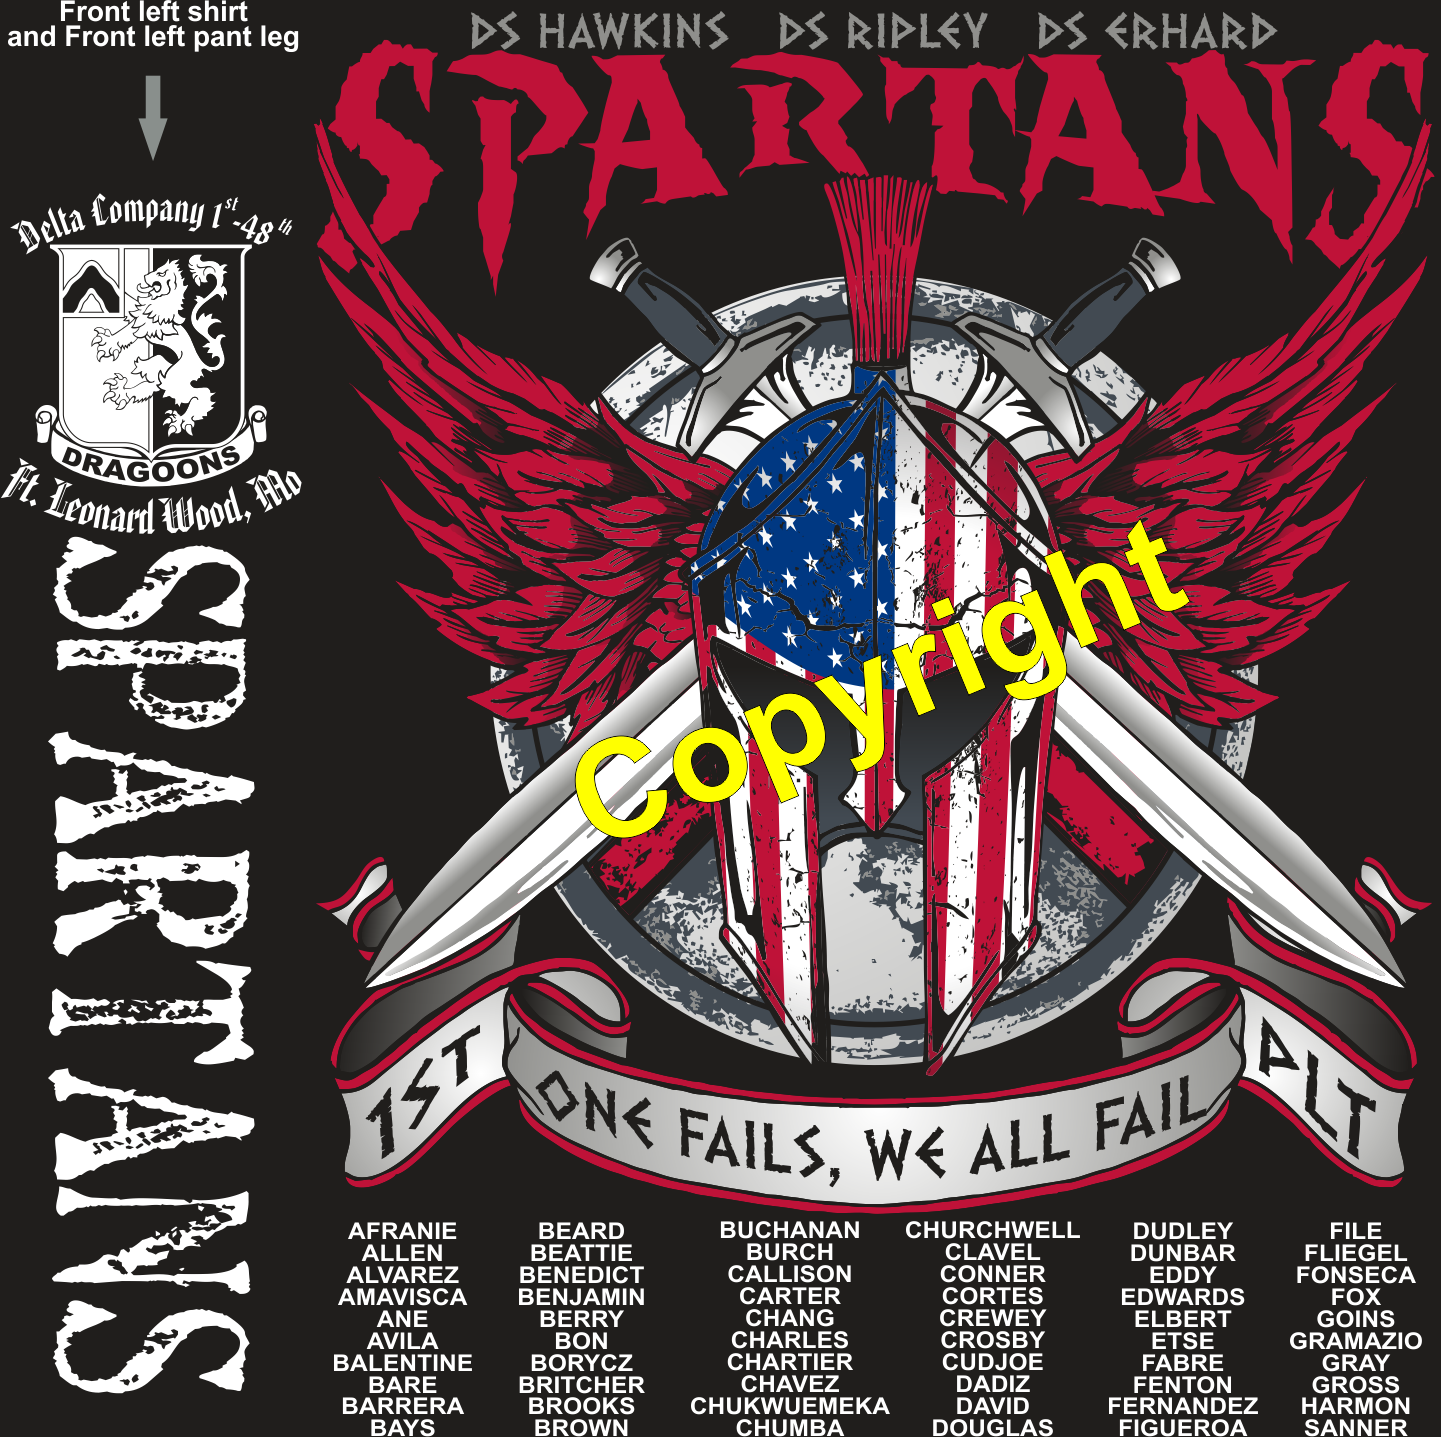 DELTA 148 SPARTANS GRADUATING DAY 7-11-2019 digital